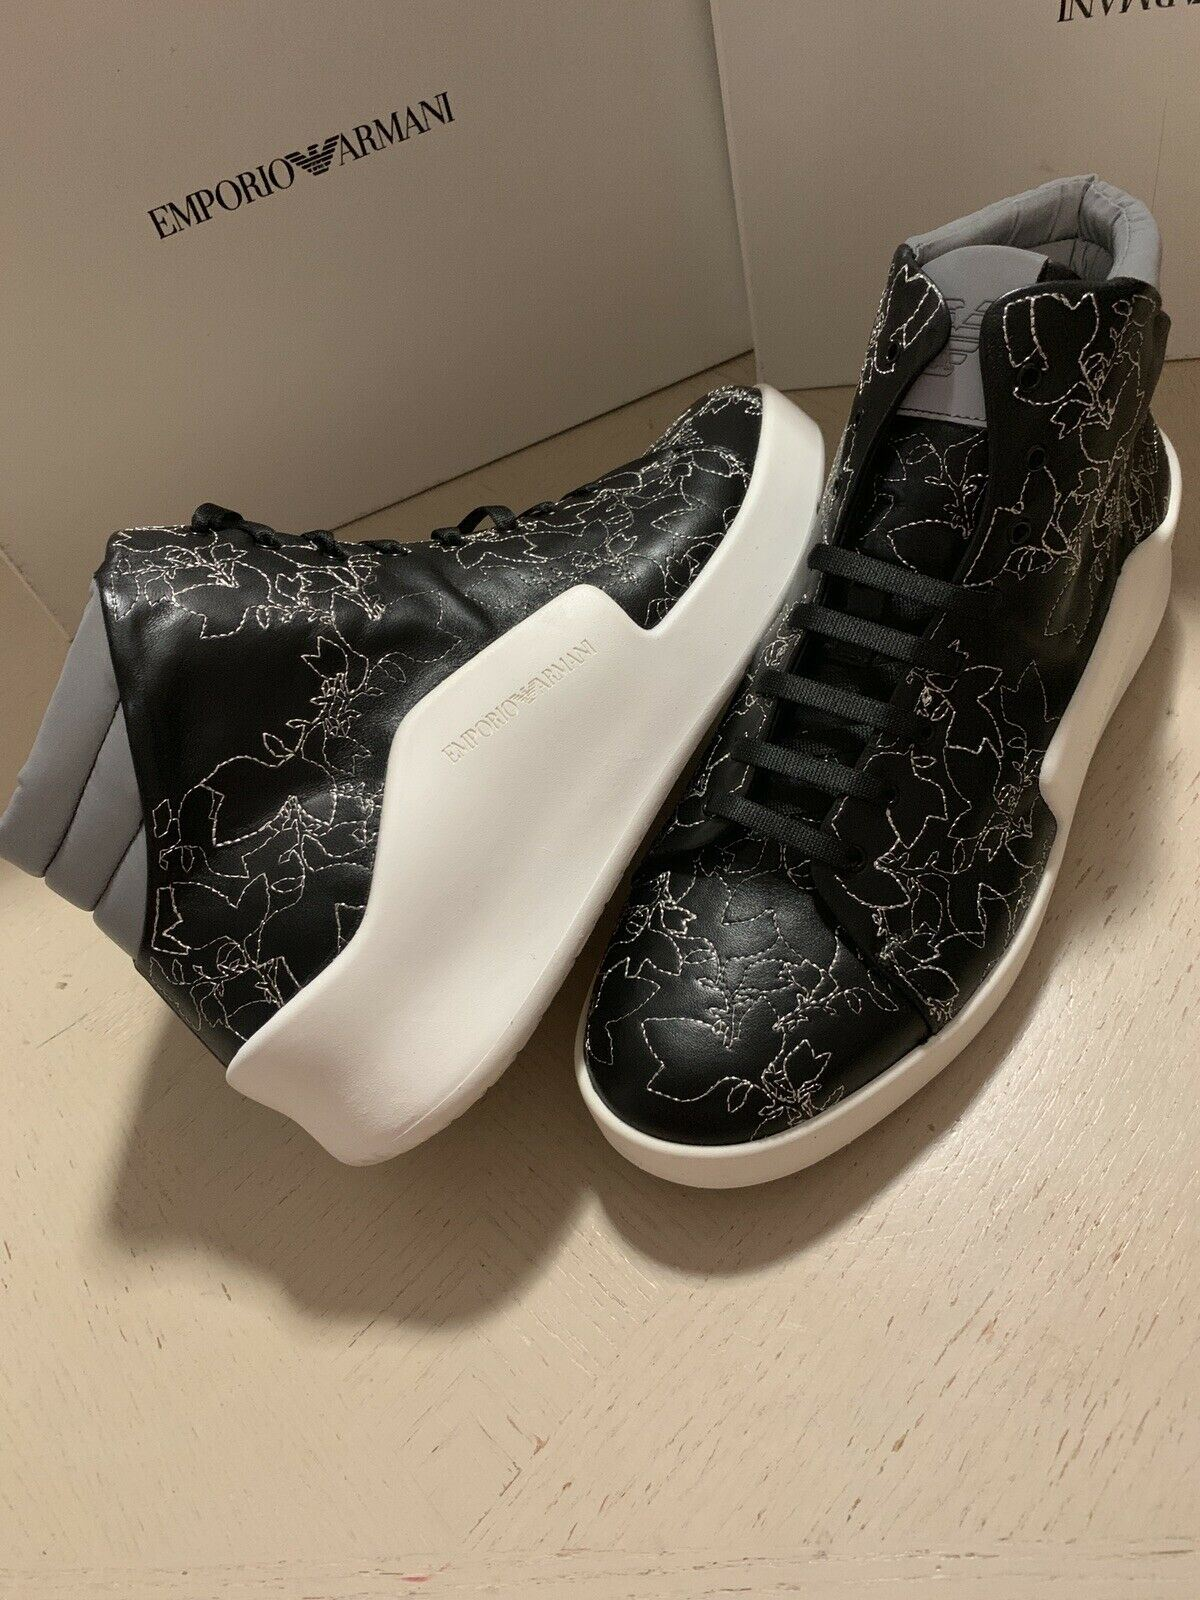 New $745 Emporio Armani Men Leather High Top Sneakers Black 11 US/10 UK X4Z063